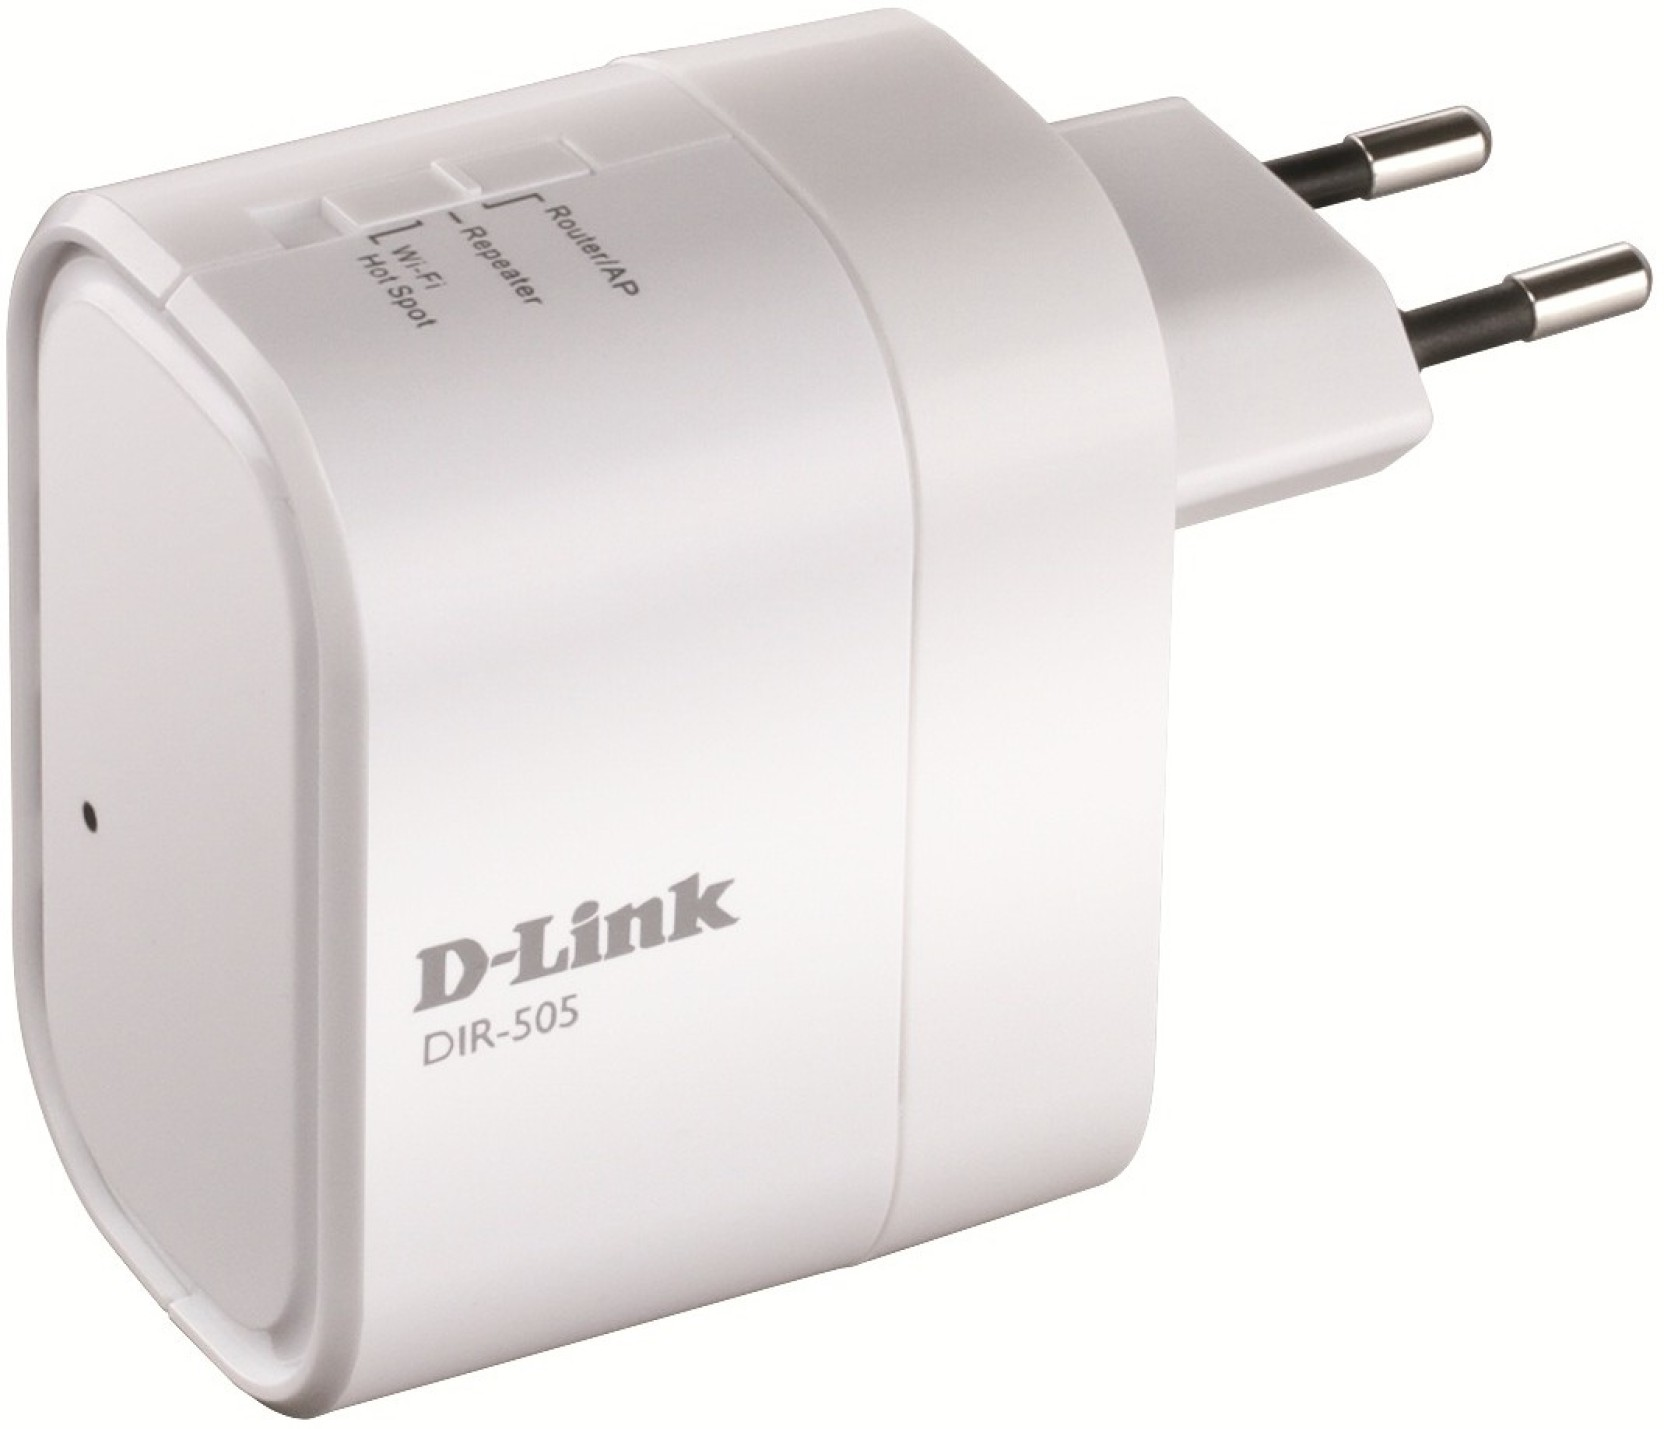 D Link Dir 505 All In One Mobile Companion Router D Link